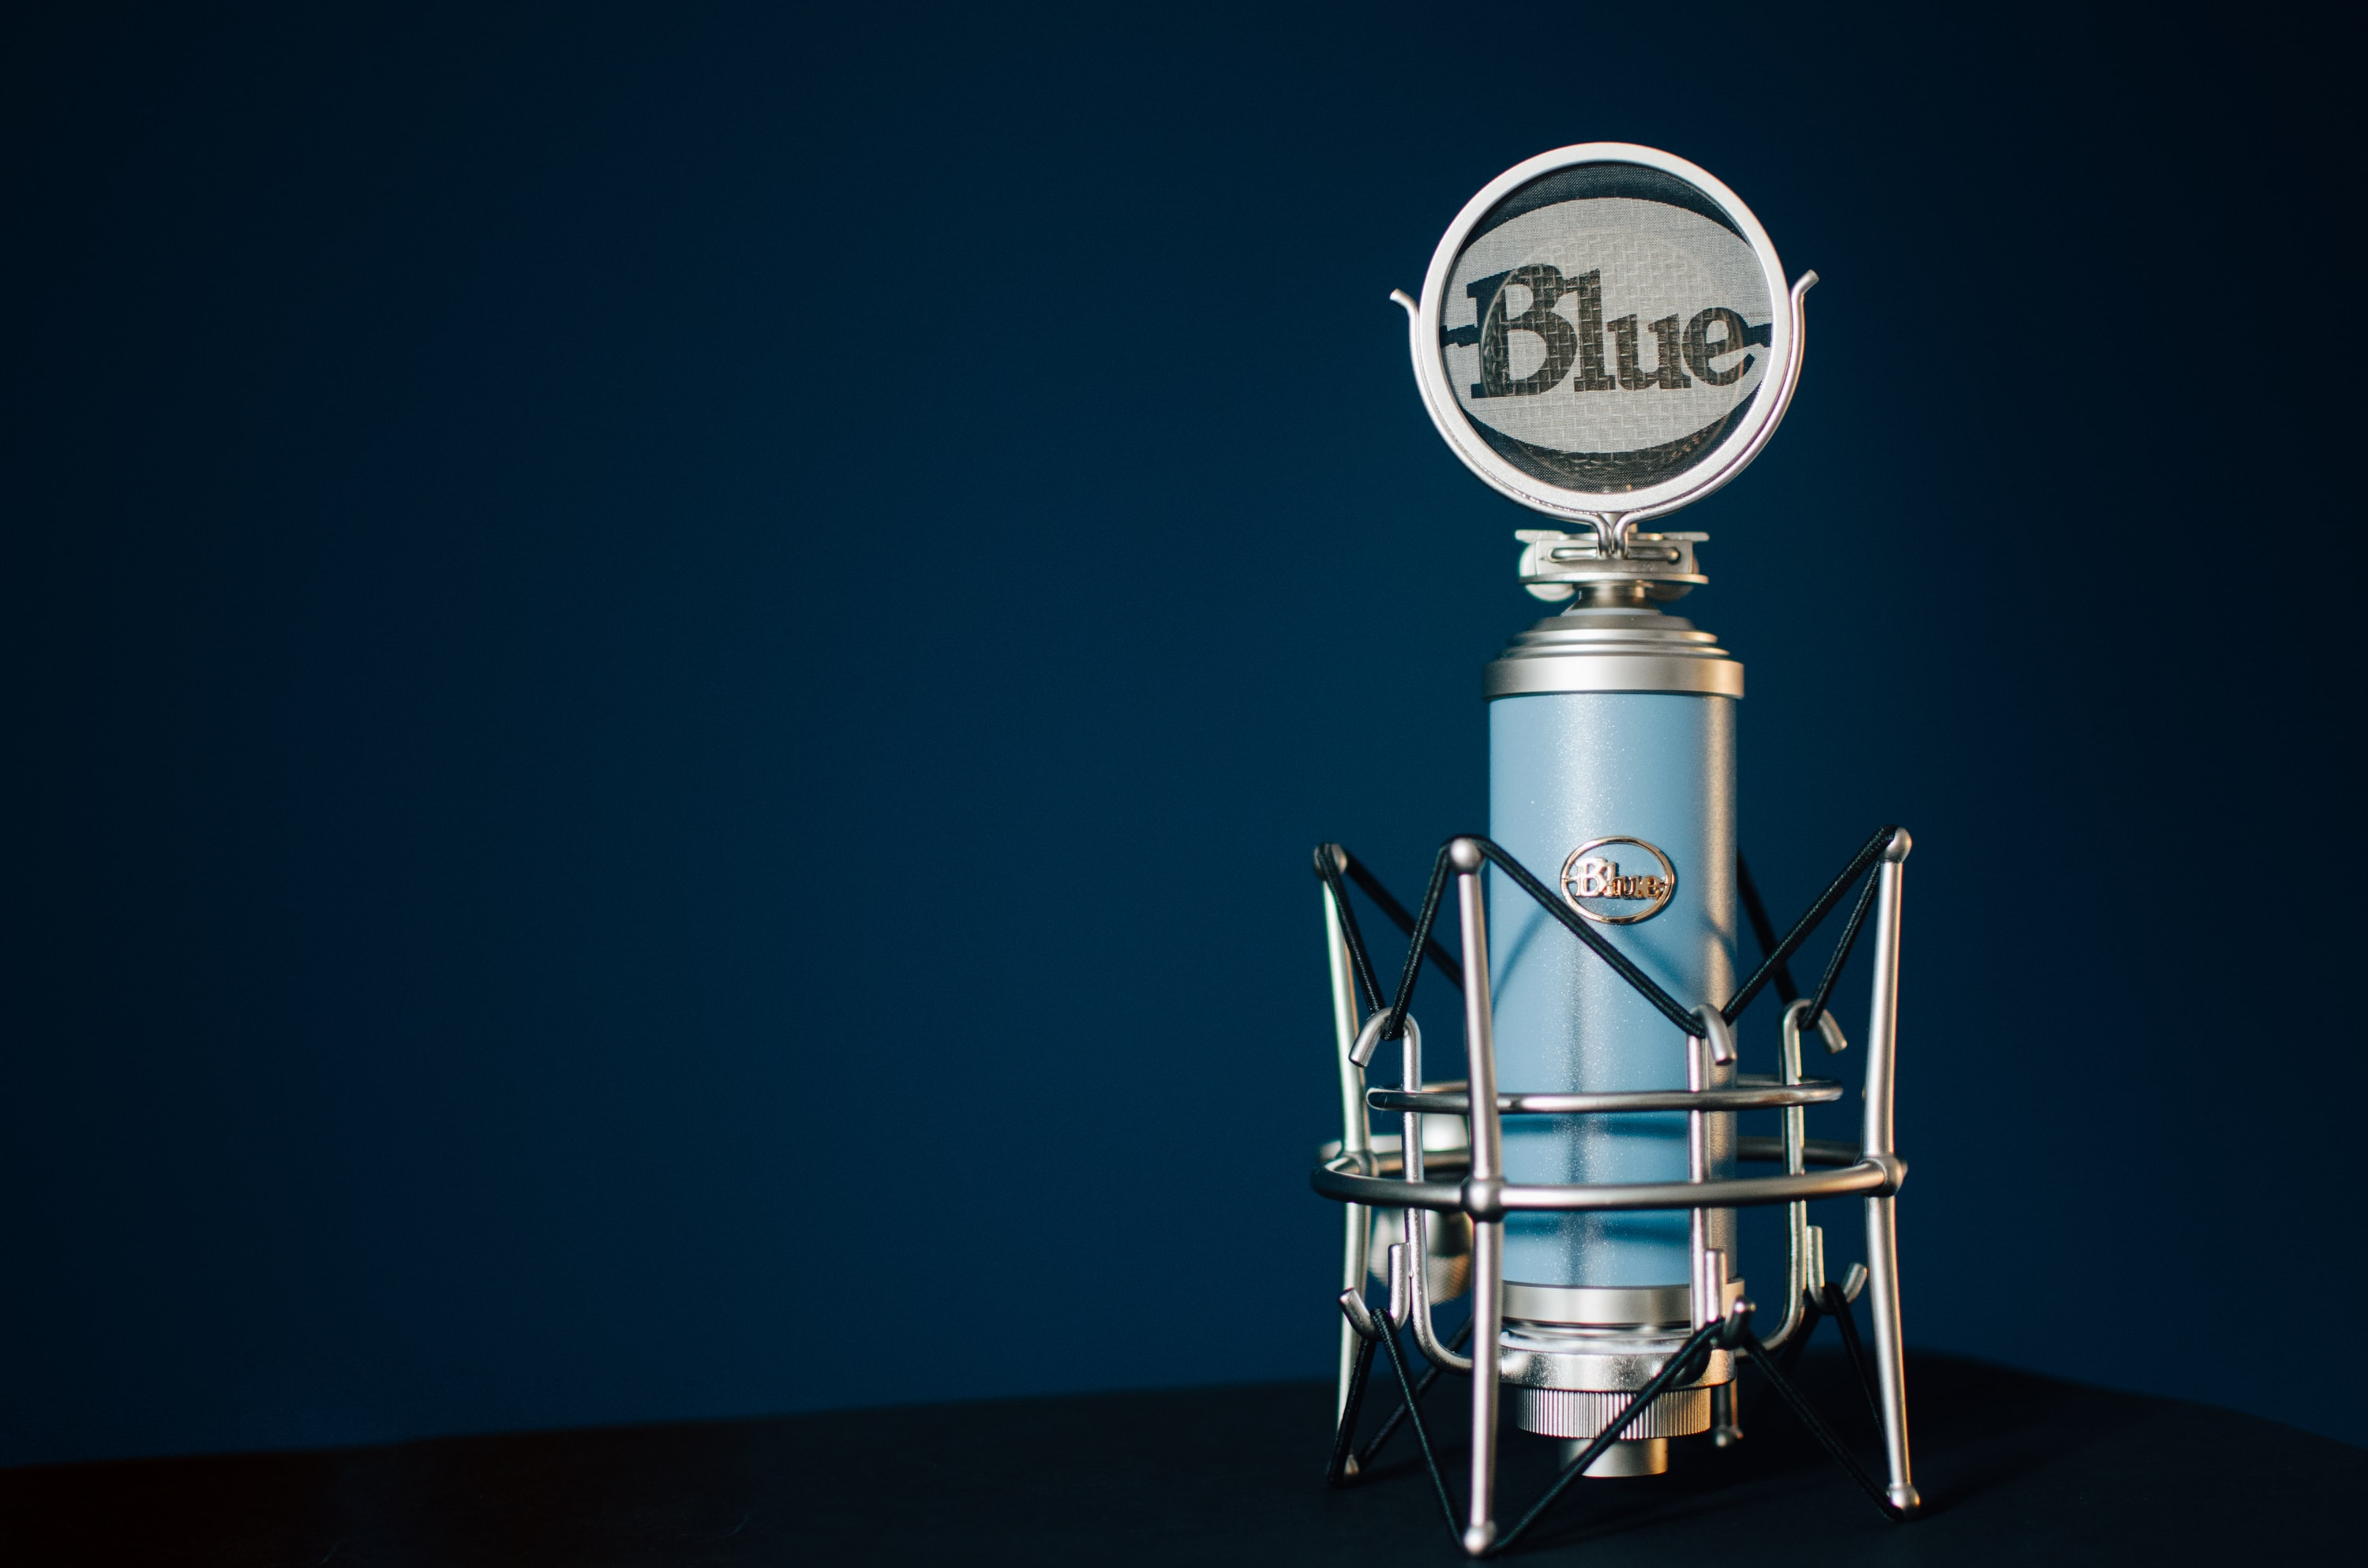 A Blue condenser microphone standing in the corner